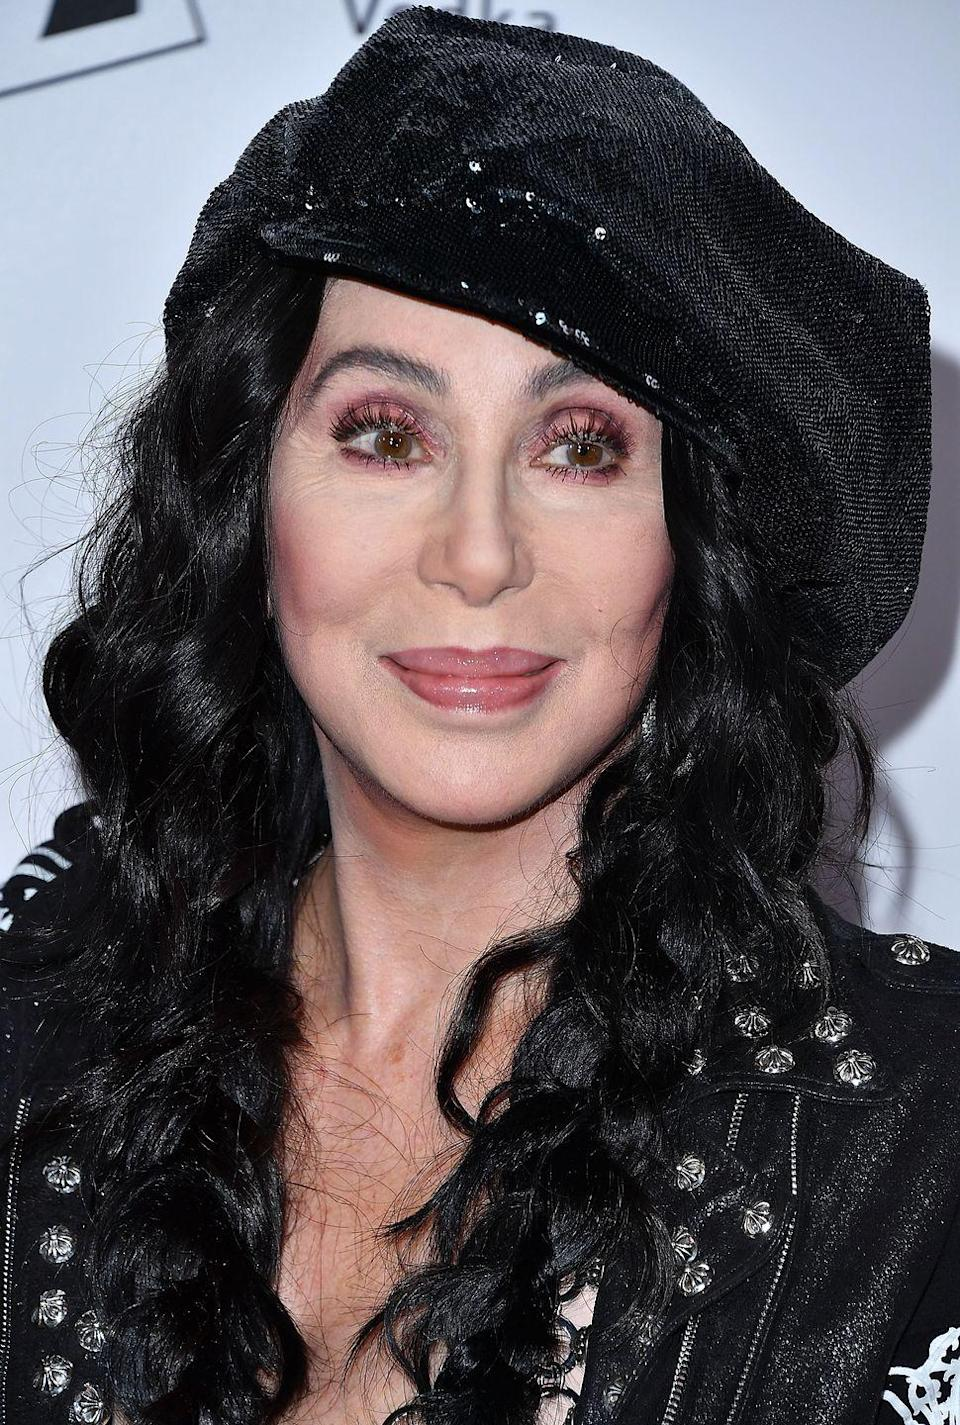 """<p>Cher has never been shy about discussing plastic surgery—but she won't admit to work she hasn't done. """"If I'd had as much plastic surgery as they [say], you know, like I've got ass implants and calf implants and cheek implants,"""" the music legend told <a href=""""http://abcnews.go.com/Primetime/story?id=132108&page=1"""" rel=""""nofollow noopener"""" target=""""_blank"""" data-ylk=""""slk:ABC in 200"""" class=""""link rapid-noclick-resp"""">ABC in 200</a><a href=""""http://abcnews.go.com/Primetime/story?id=132108&page=1"""" rel=""""nofollow noopener"""" target=""""_blank"""" data-ylk=""""slk:2"""" class=""""link rapid-noclick-resp"""">2</a>.""""I've had the same cheeks my entire life. No butt lifts. No ribs removed. If I want to put my tits on my back, it's nobody's business but my own,"""" she said. </p>"""